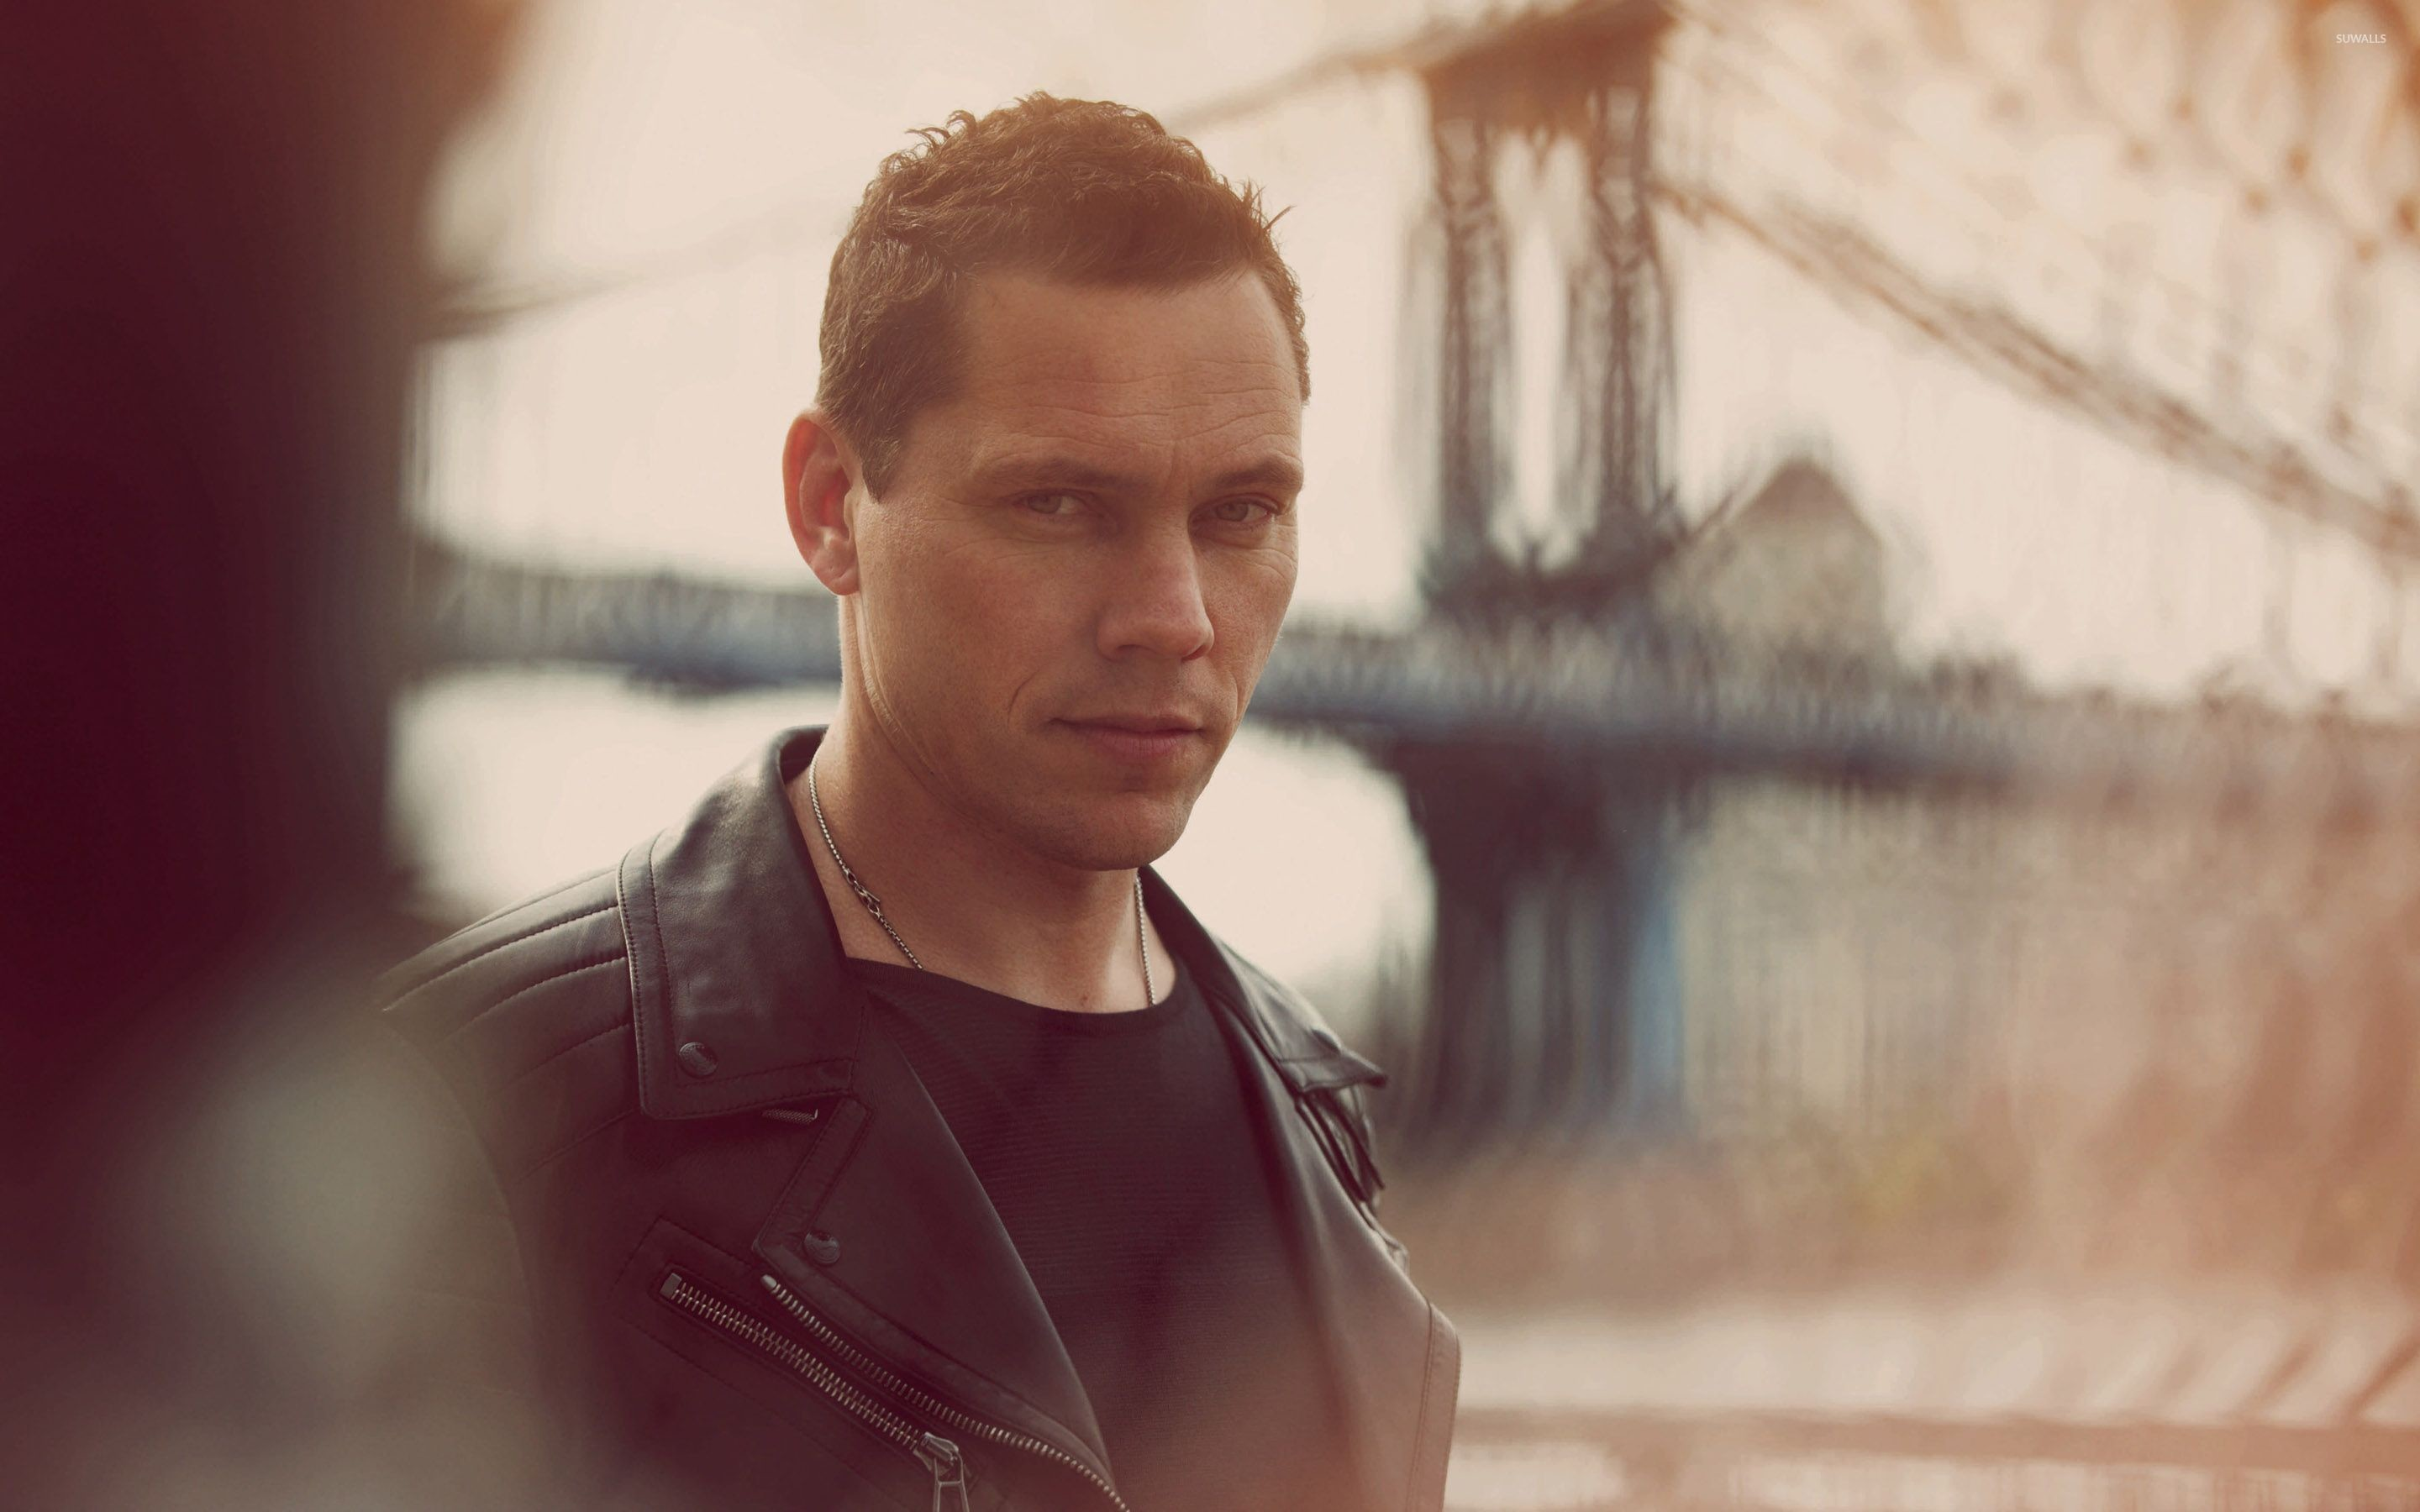 Res: 2880x1800, Tiesto [6] wallpaper